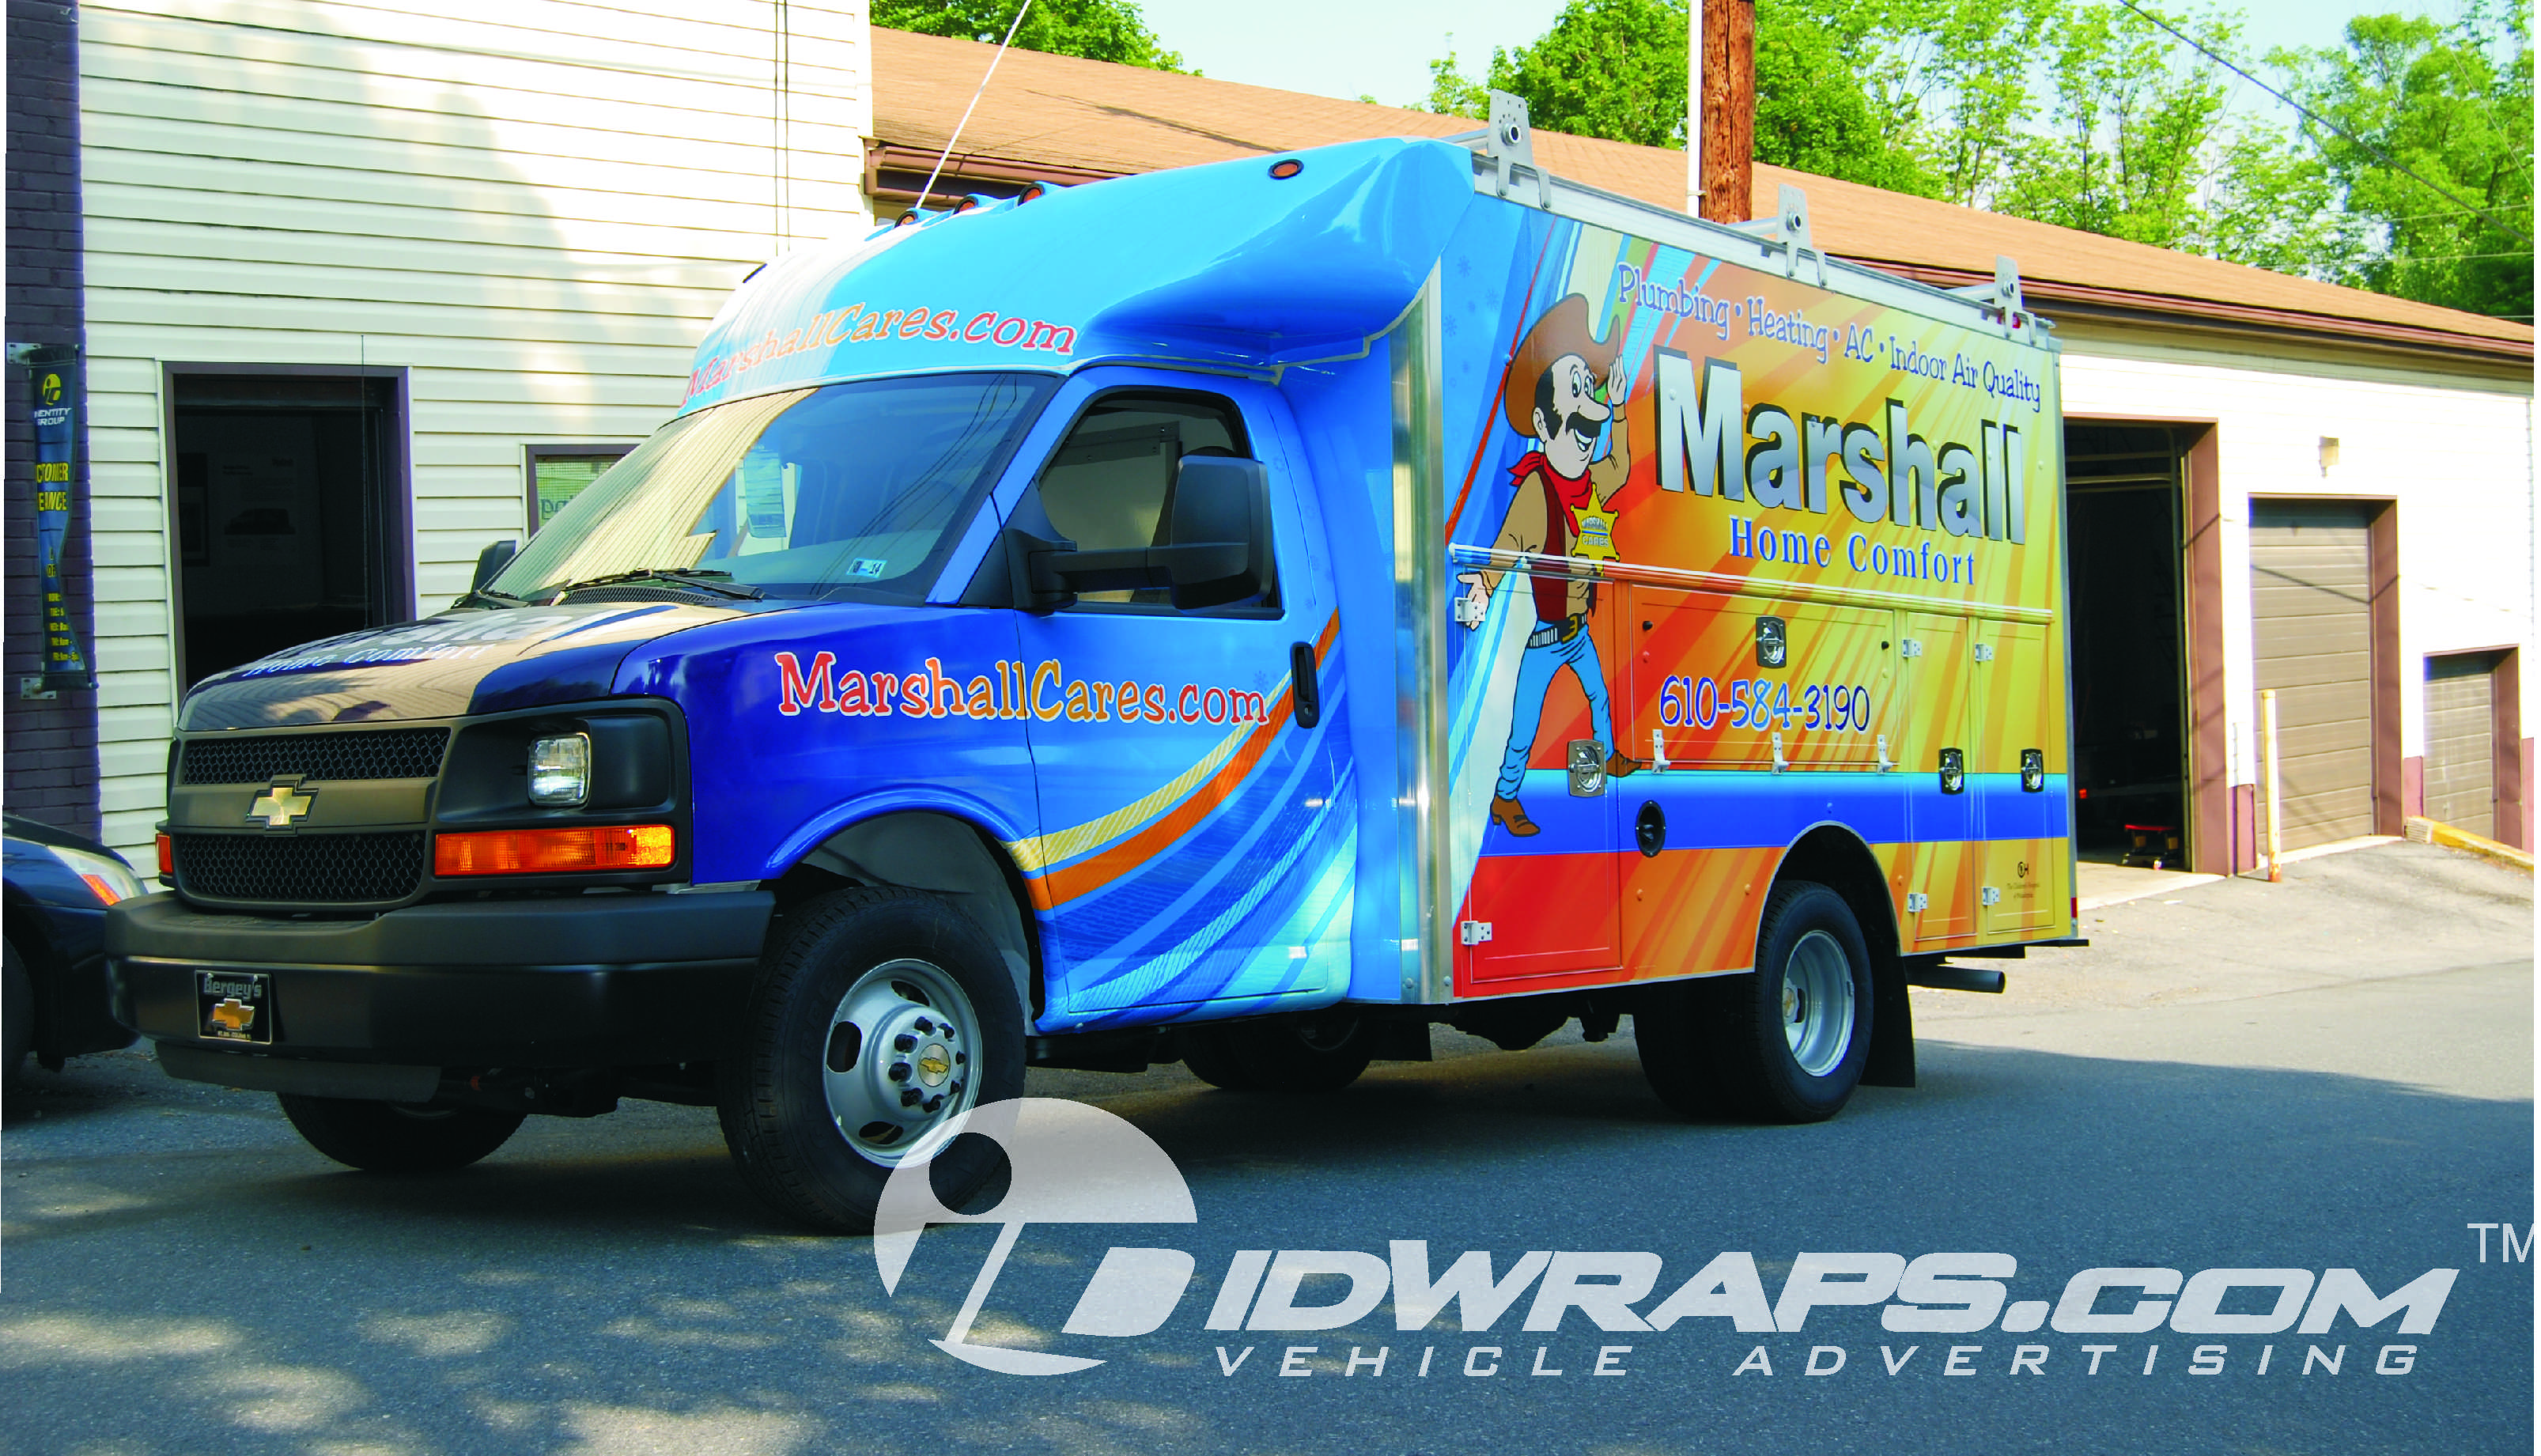 Marshall HVAC Chevy Spartan Cutaway Utility 3M Vinyl Van Wrap Advertising